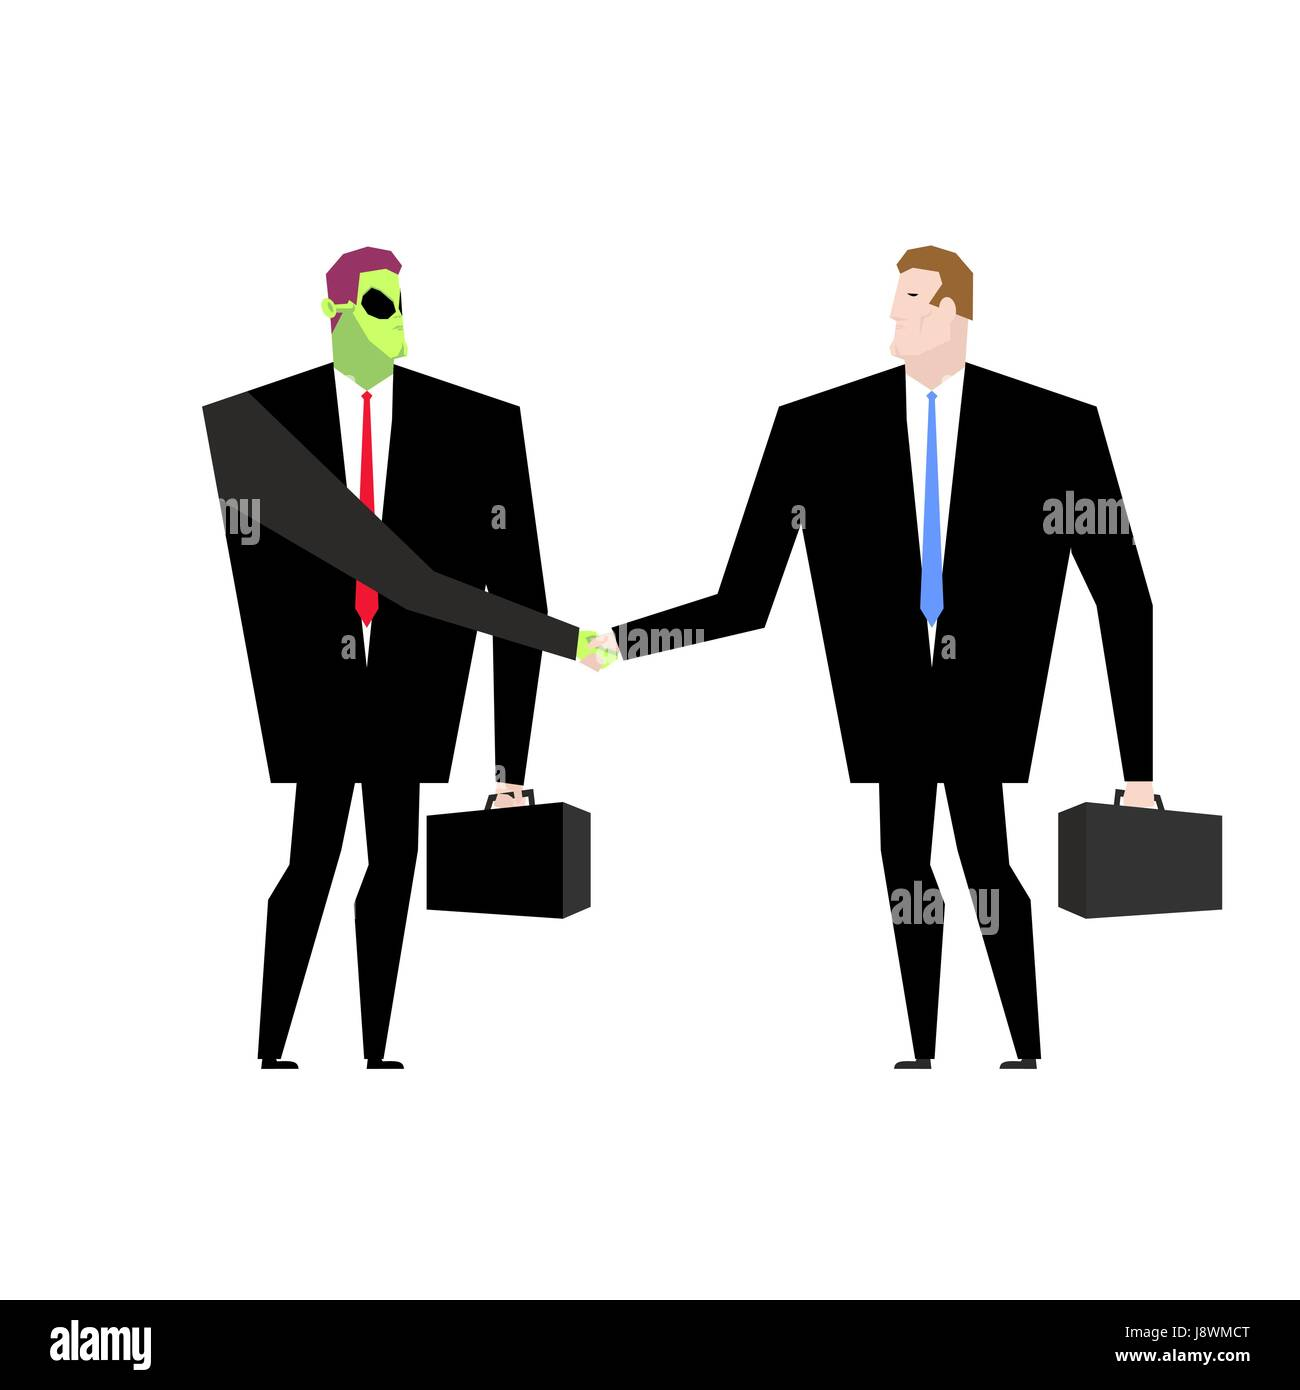 Deal with UFO. Businessman and alien conclude case. Martian and man shake hands. Handshake humanoids. Agreement - Stock Image